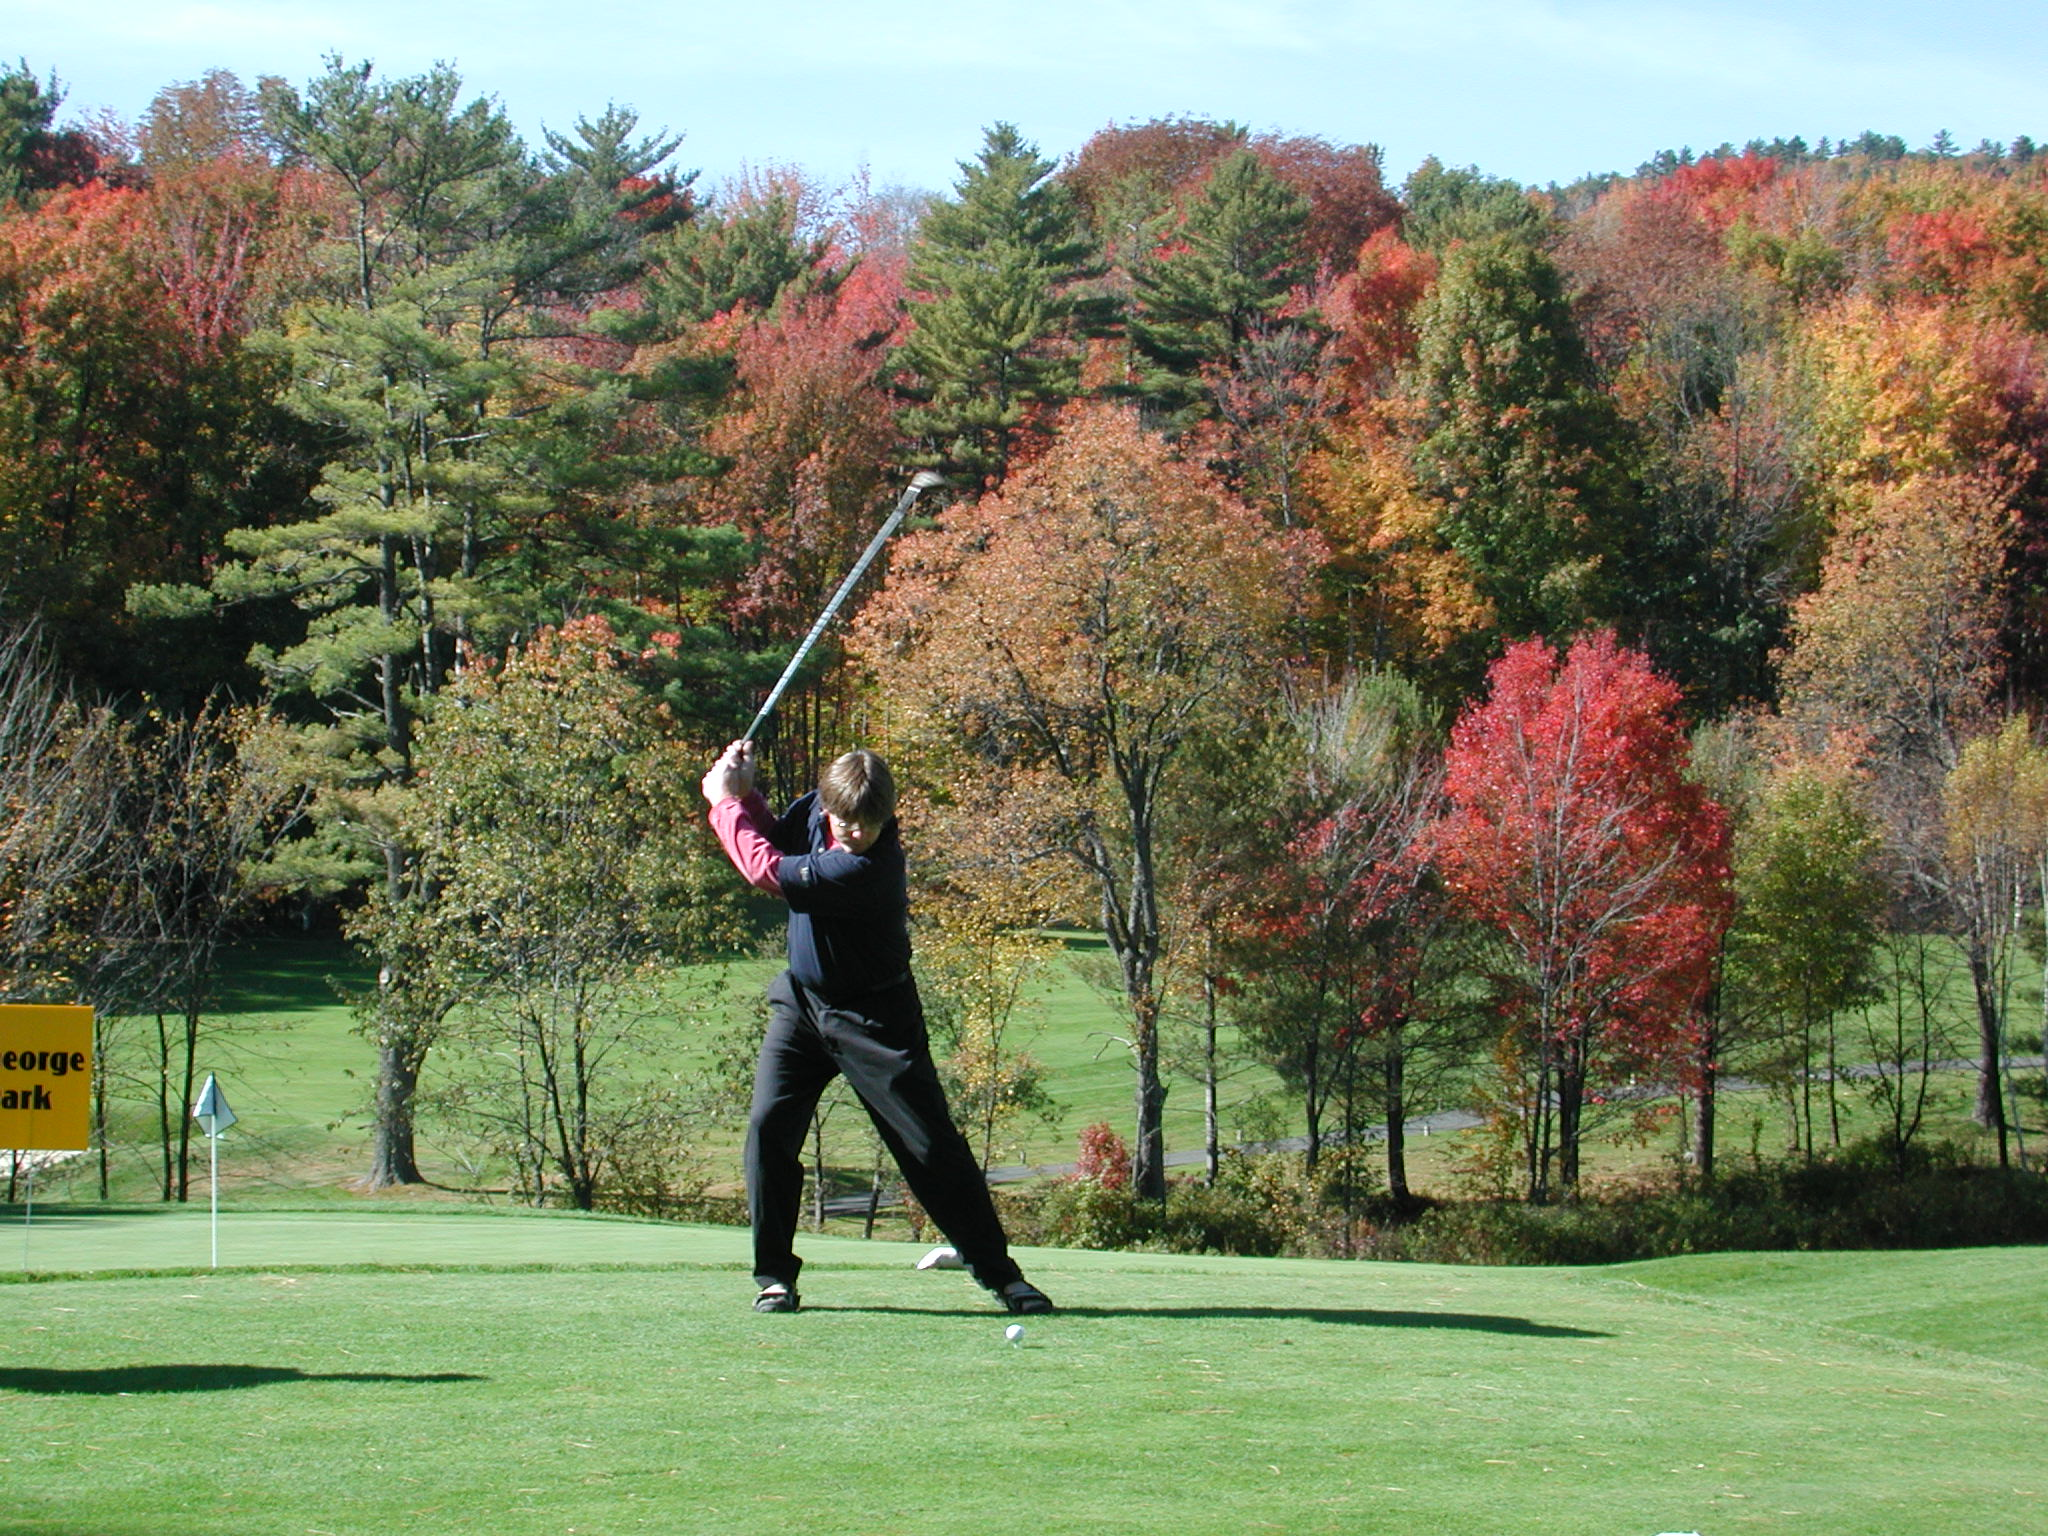 man golfing during the fall season